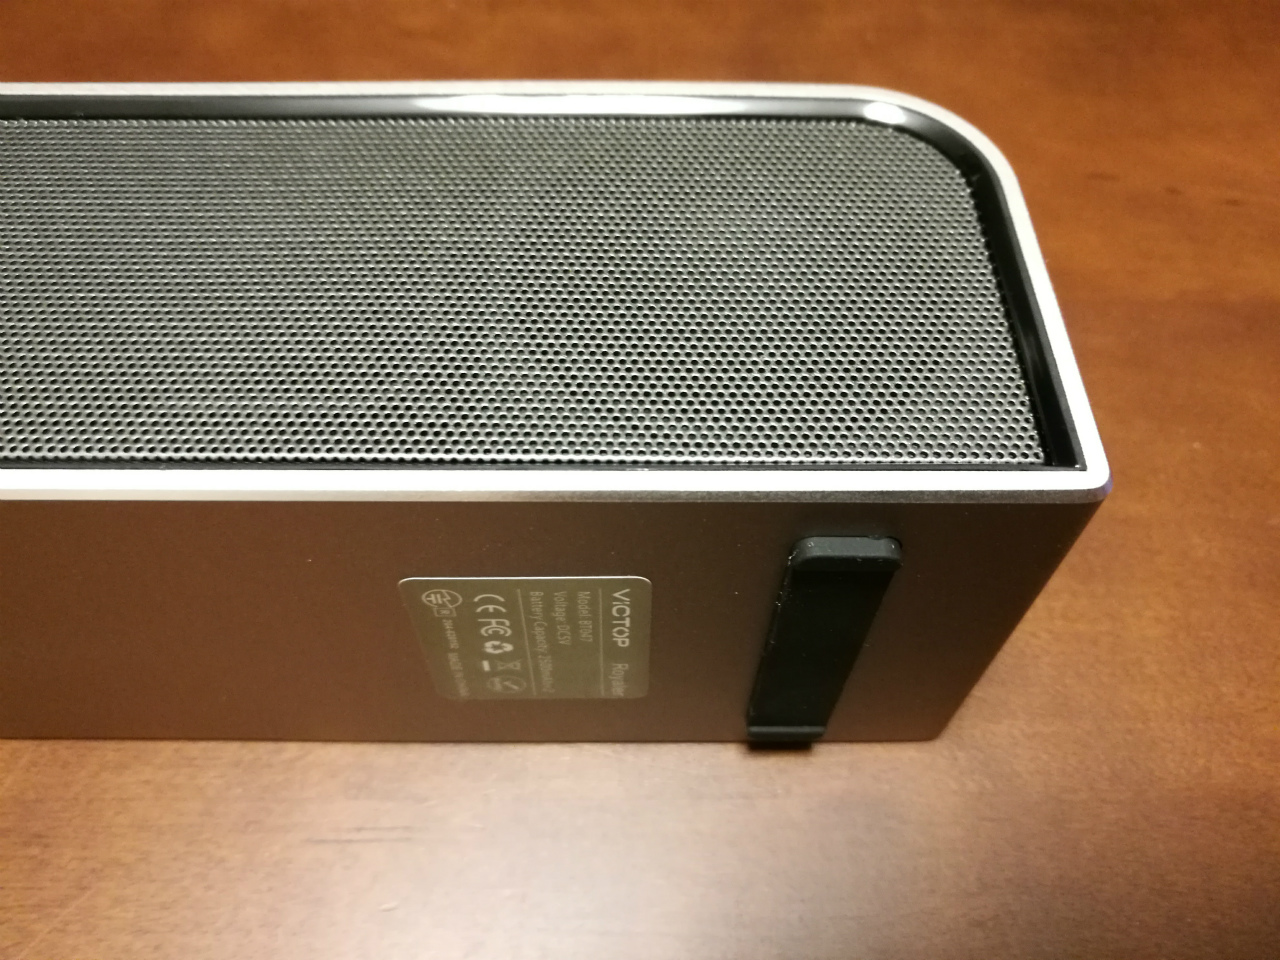 pr-qtuo-royaler-bluetooth-speaker-20w-04